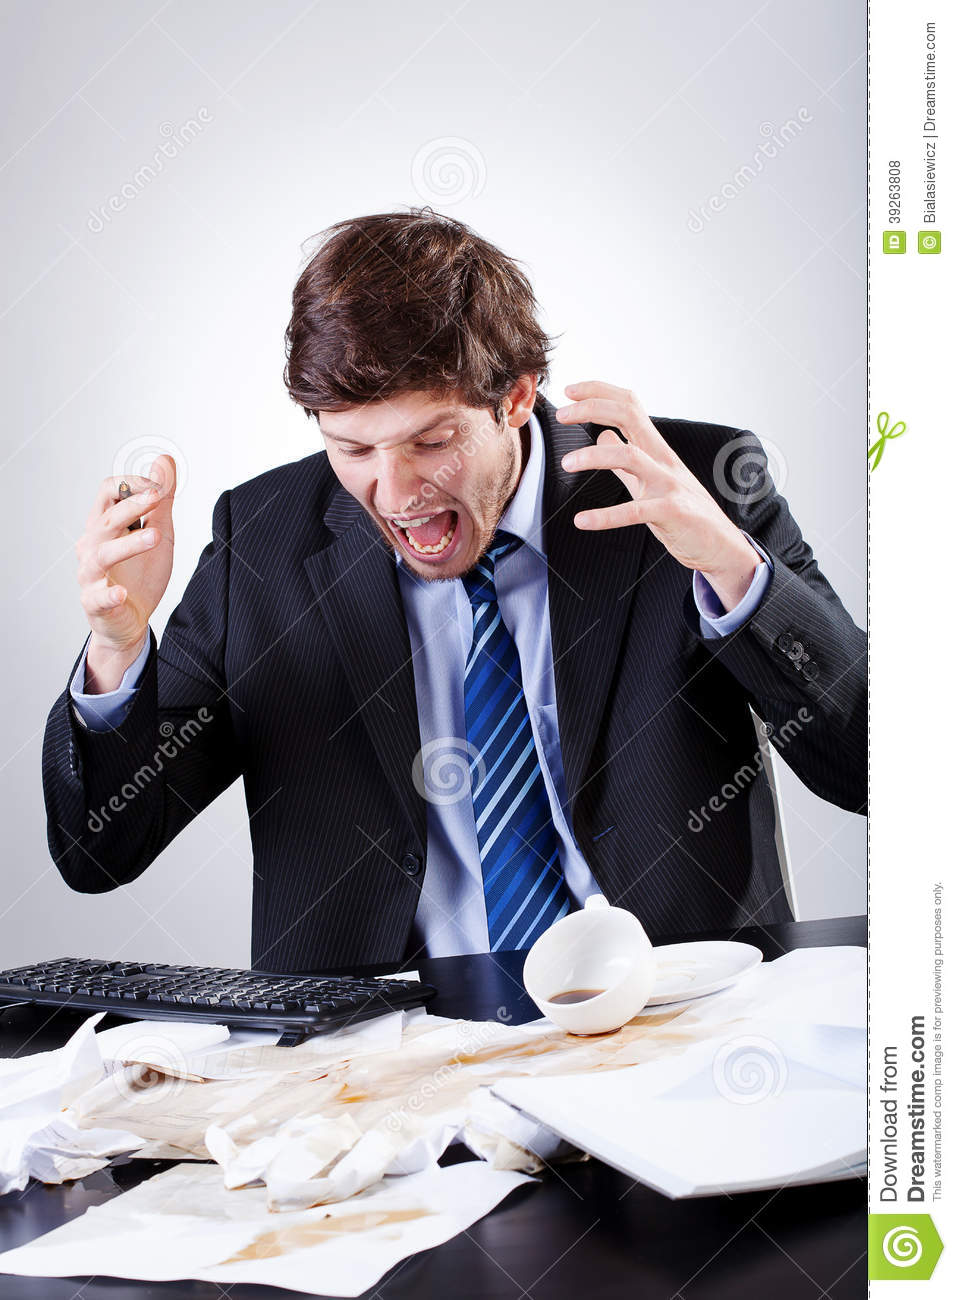 Angry employee stock photo. Image of expression, listen ...